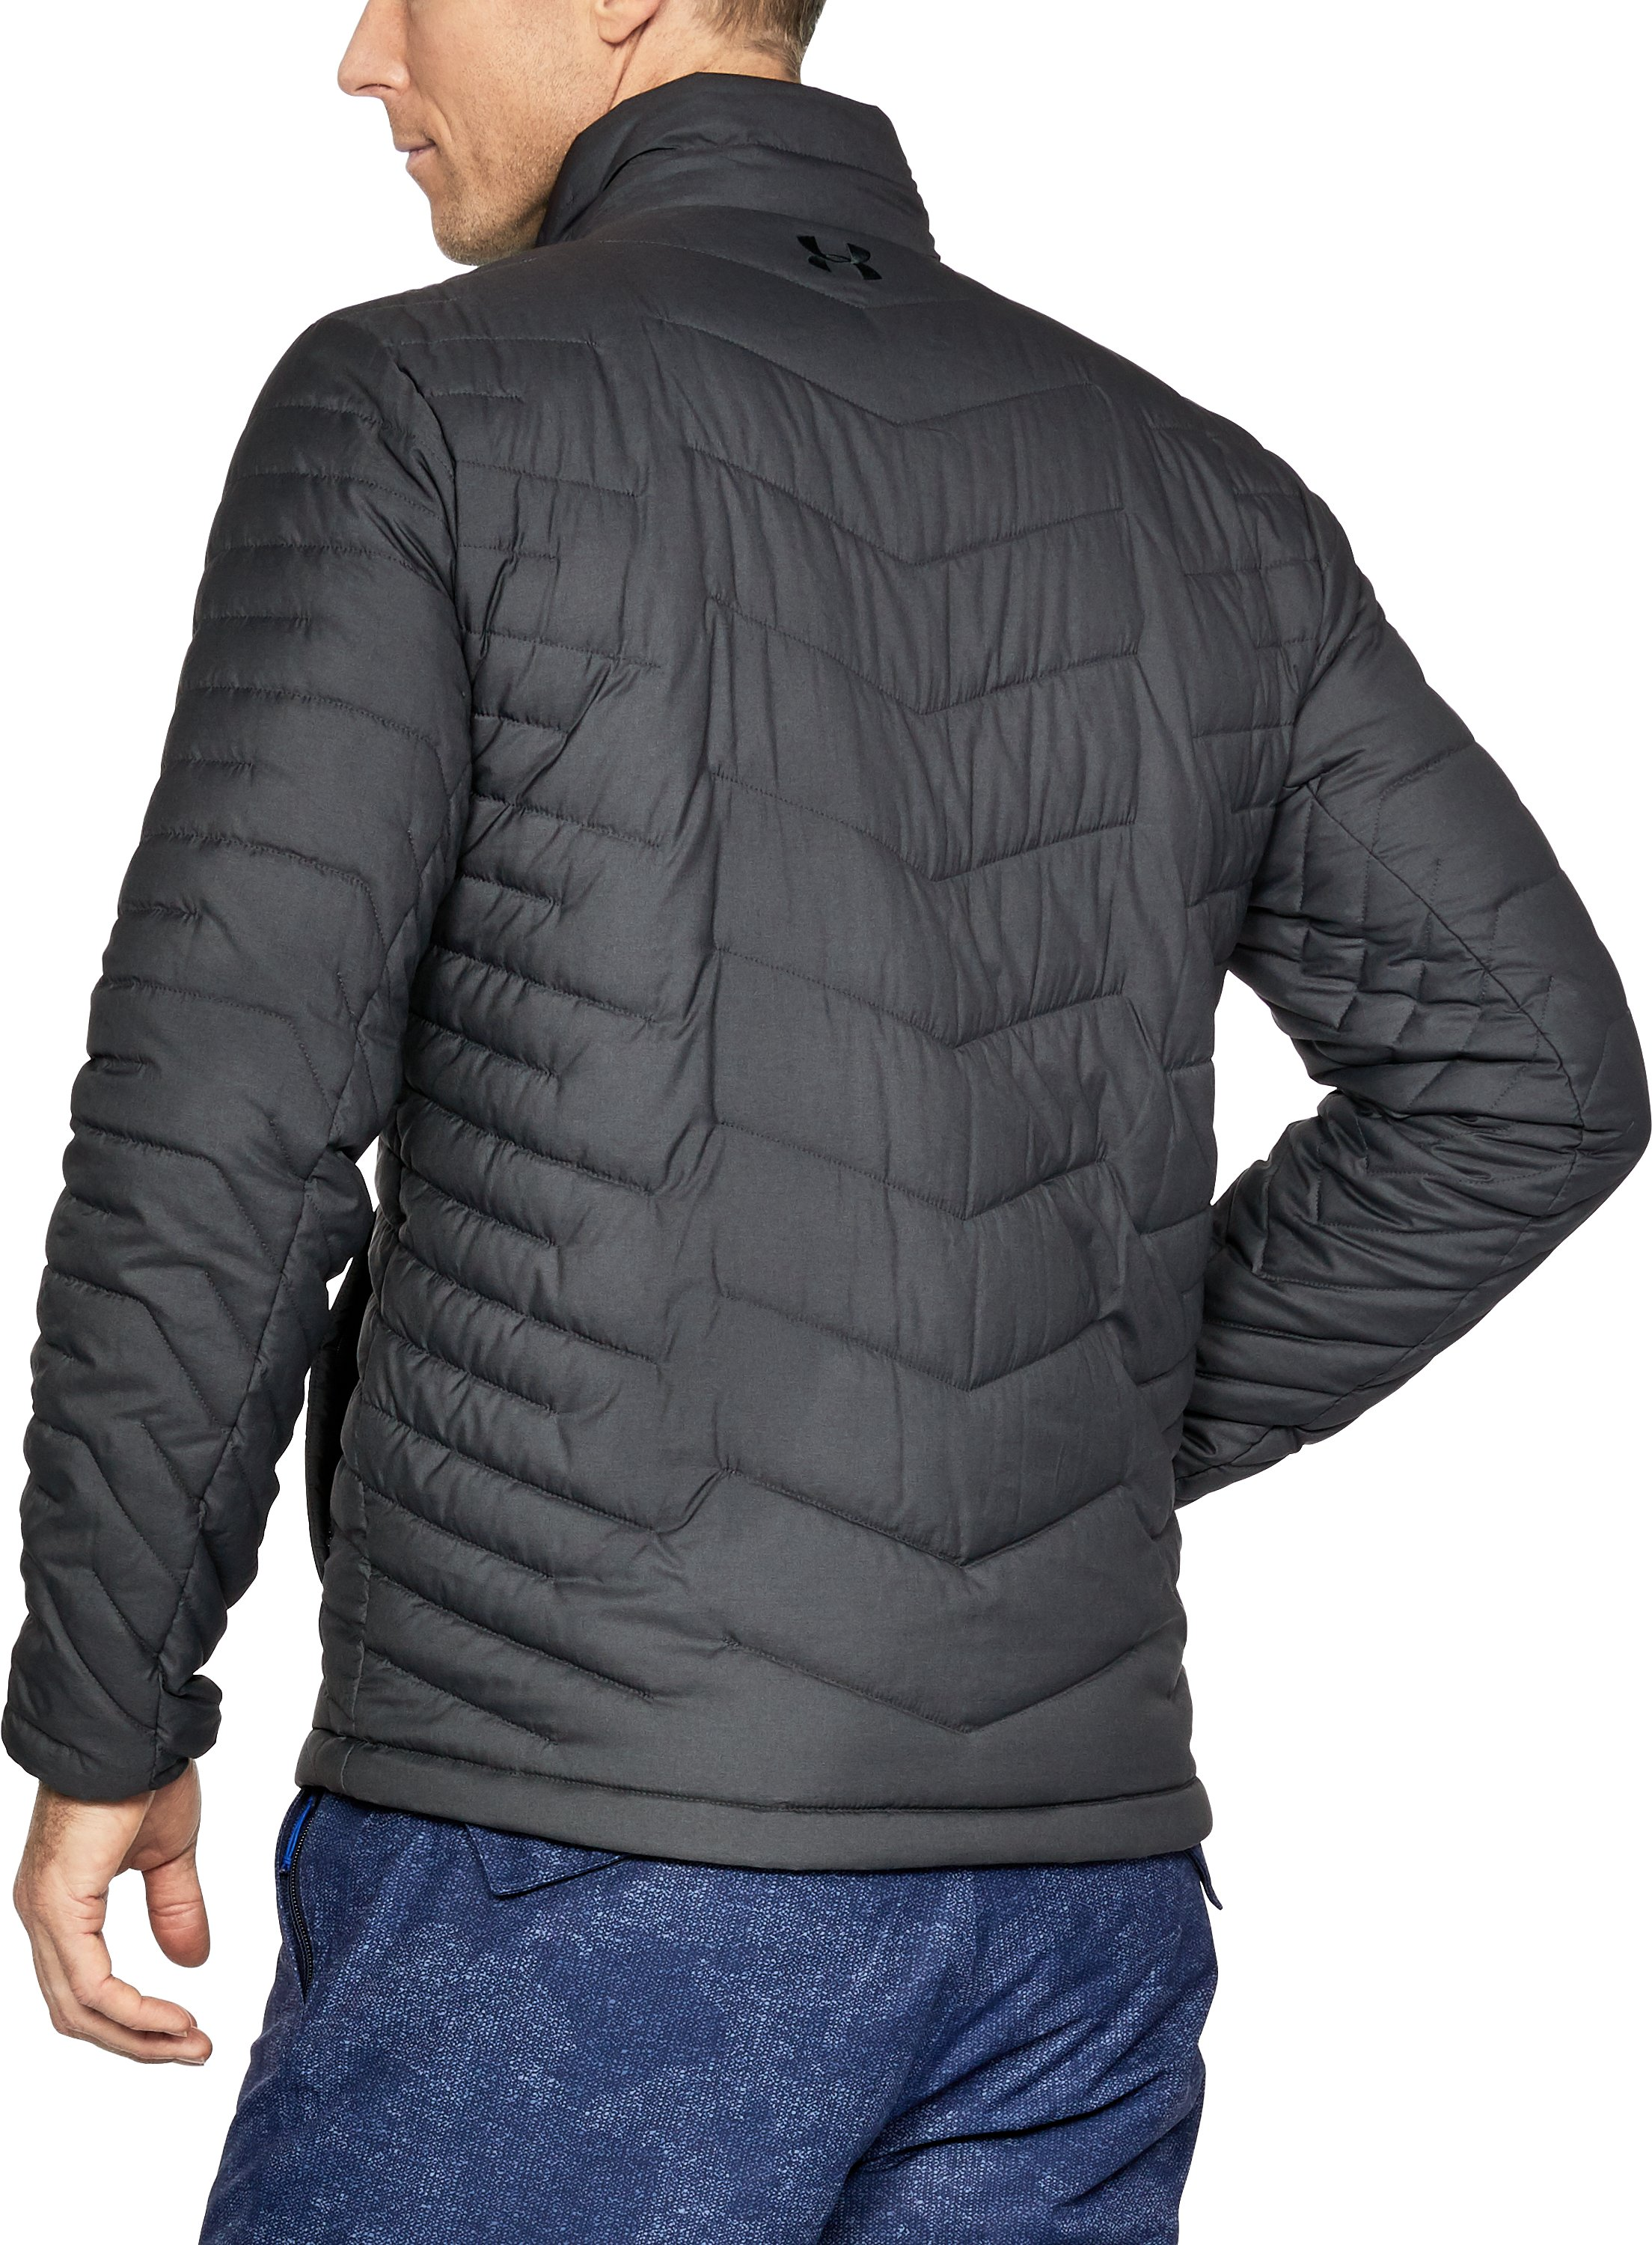 Men's ColdGear® Reactor Jacket, Carbon Heather, undefined